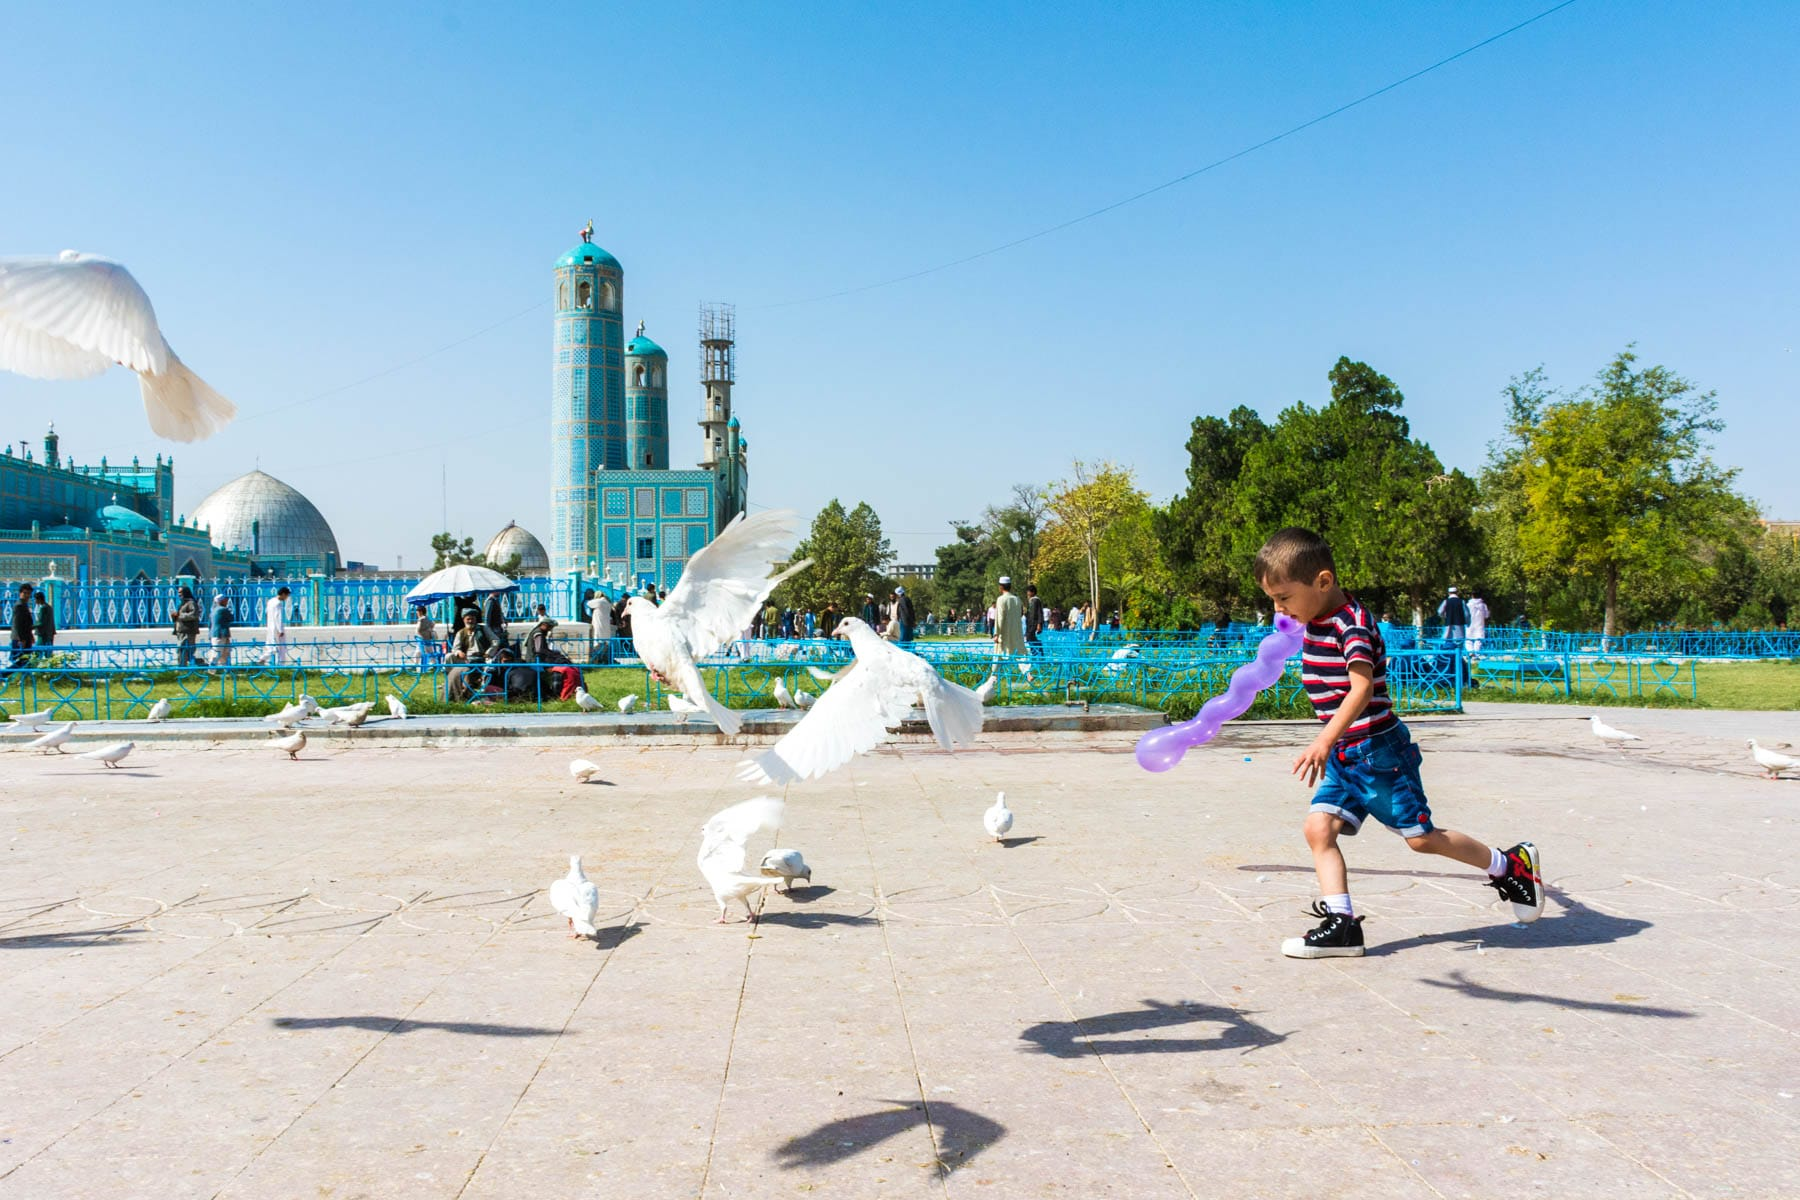 Photos of Mazar-i-Sharif, Afghanistan - A boy chasing white pigeons - Lost With Purpose